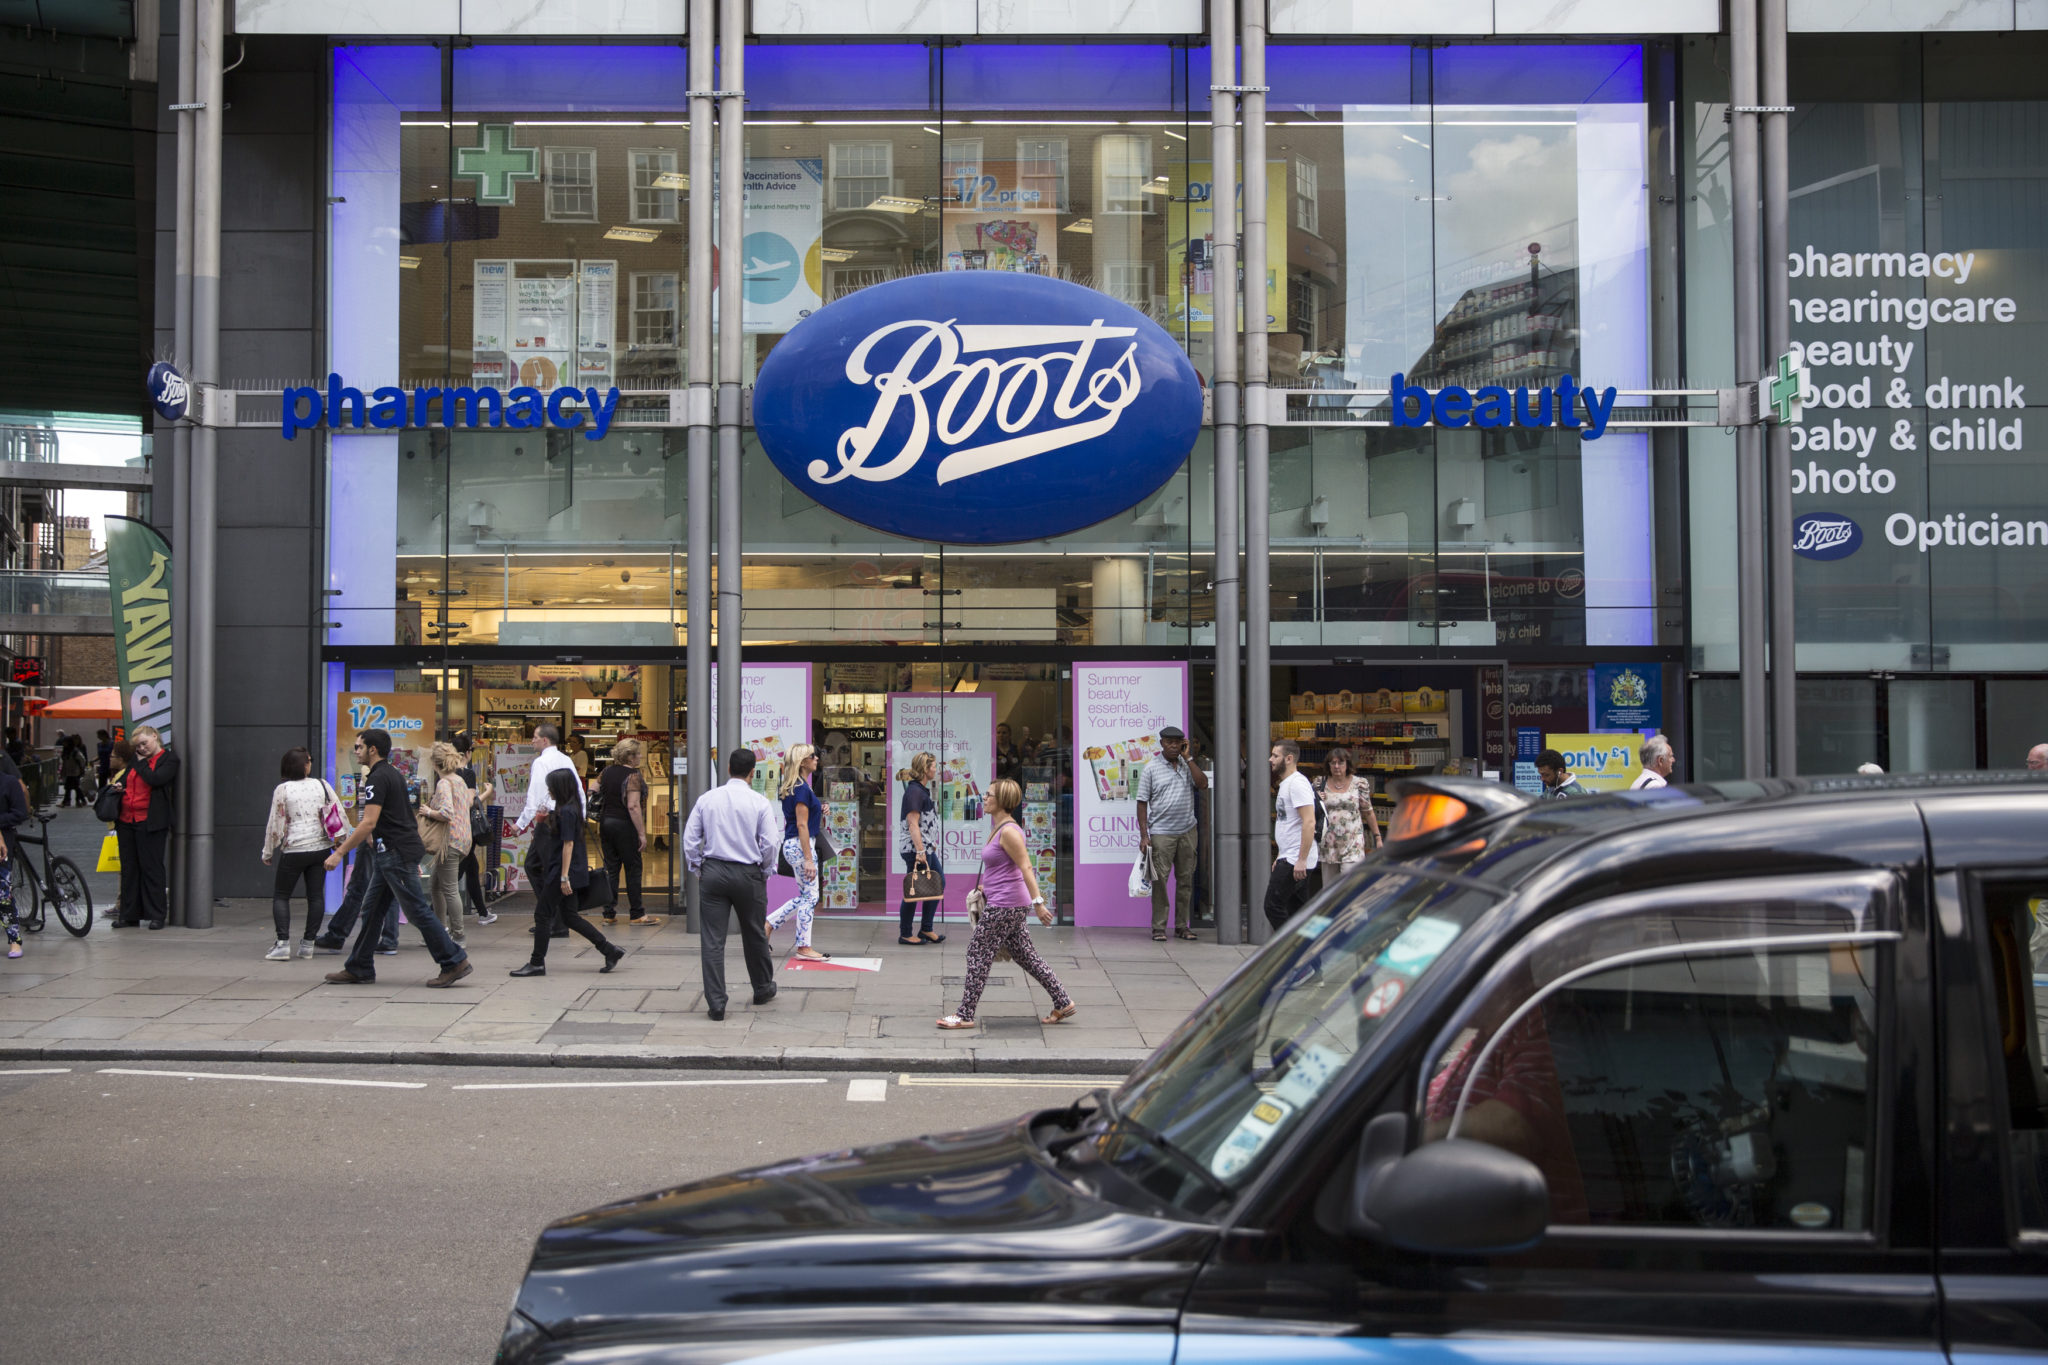 Small mobility retailers should not be afraid of walking into stores like Boots to see how they lay out their stores. (Photo by Oli Scarff/Getty Images)